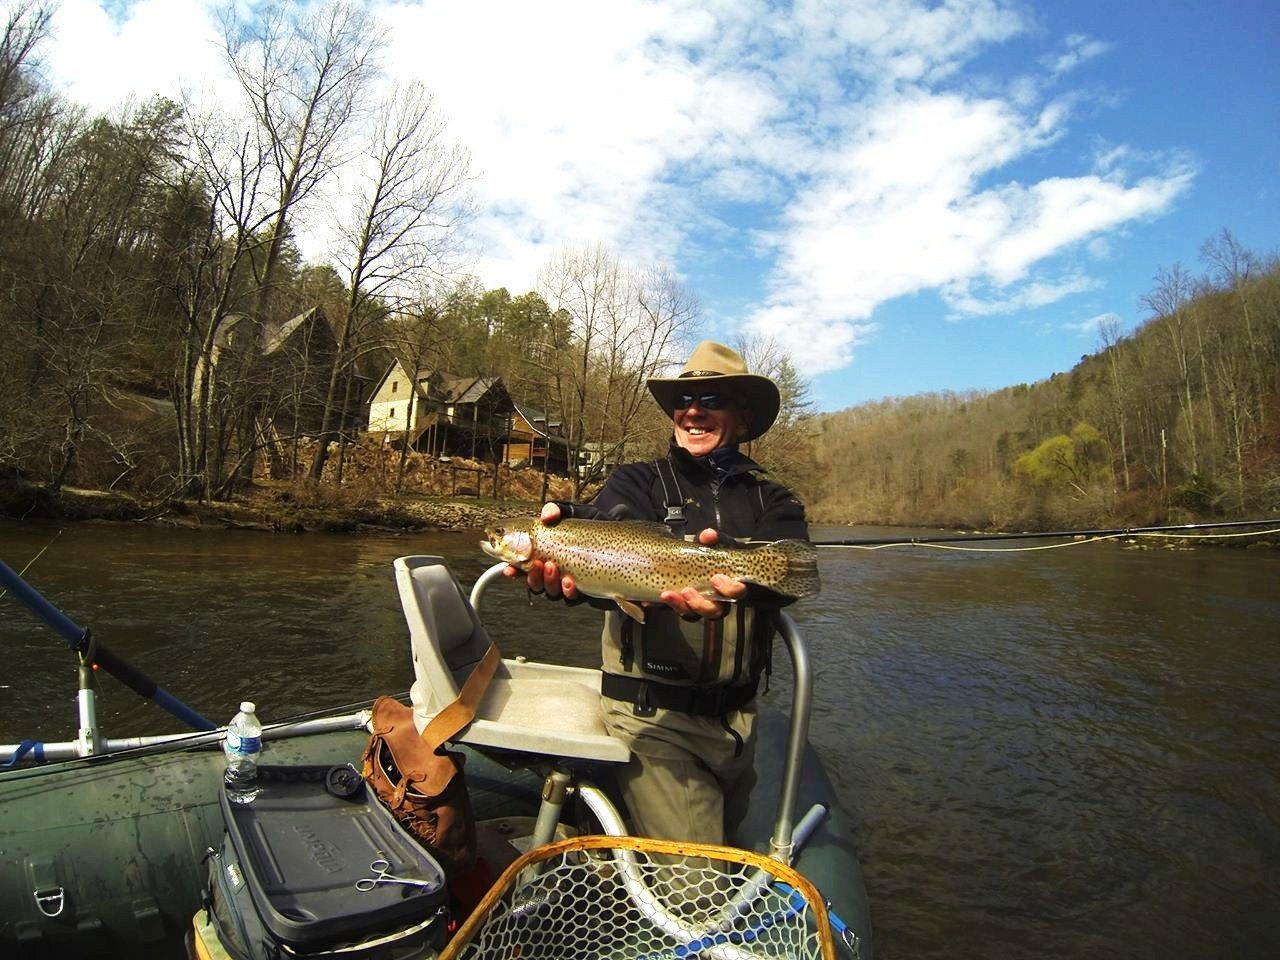 Guided Fly Fishing Trips Near Highlands North Carolina